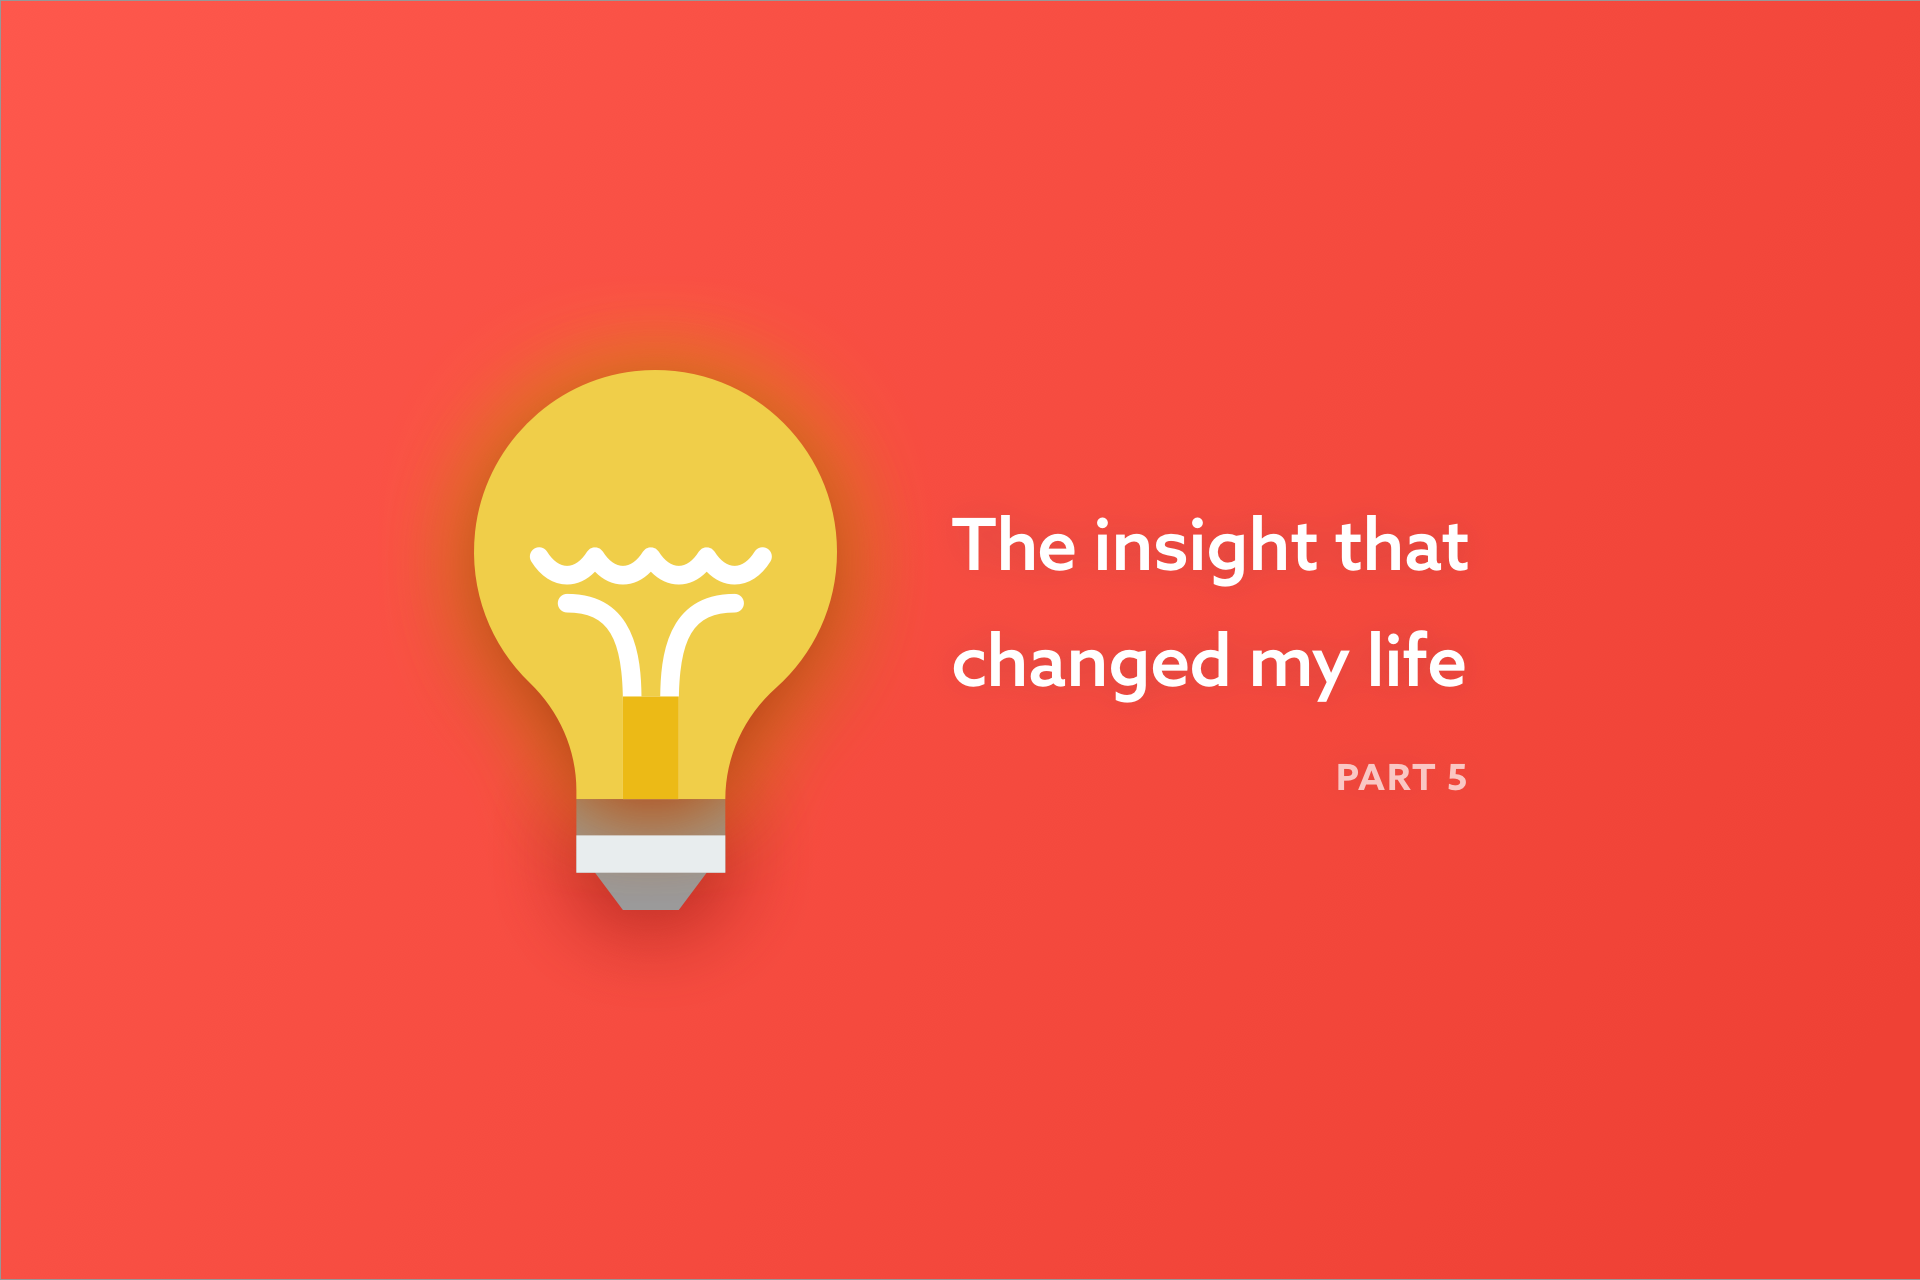 The insight that changed my life (Part Five)